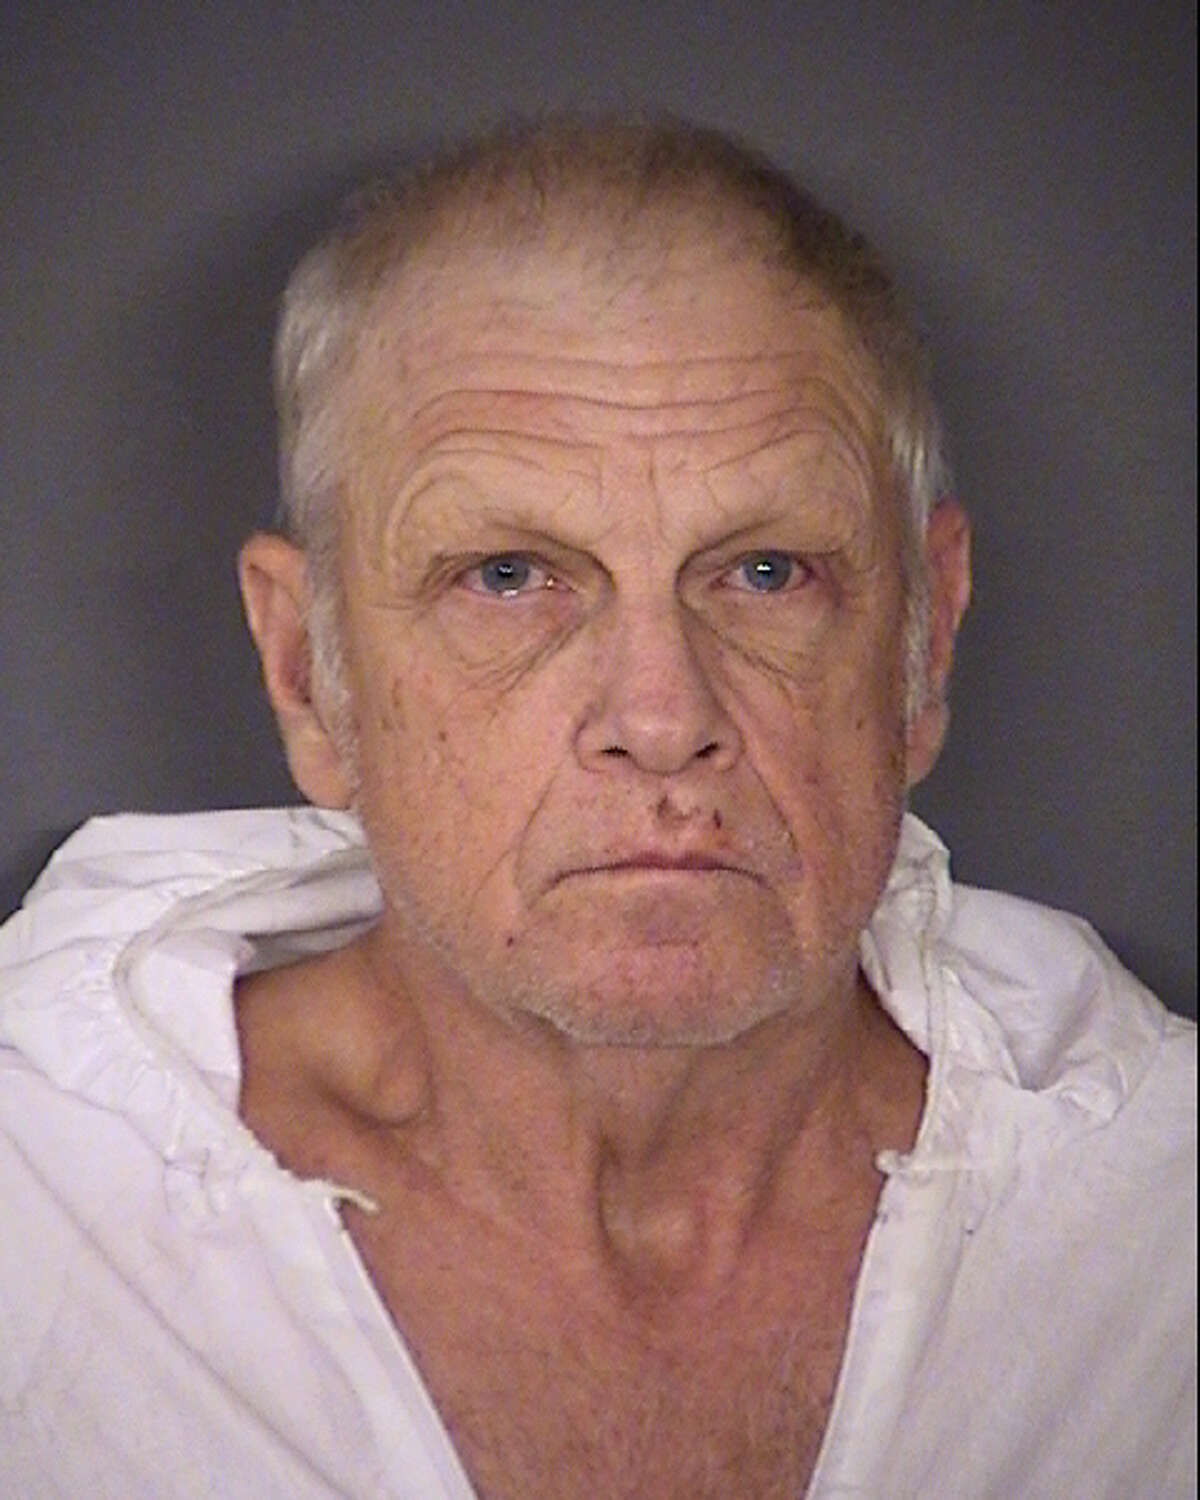 Jerry Milton Smith, 63, faces a charge of murder in connection with the death of Fred Henderson.